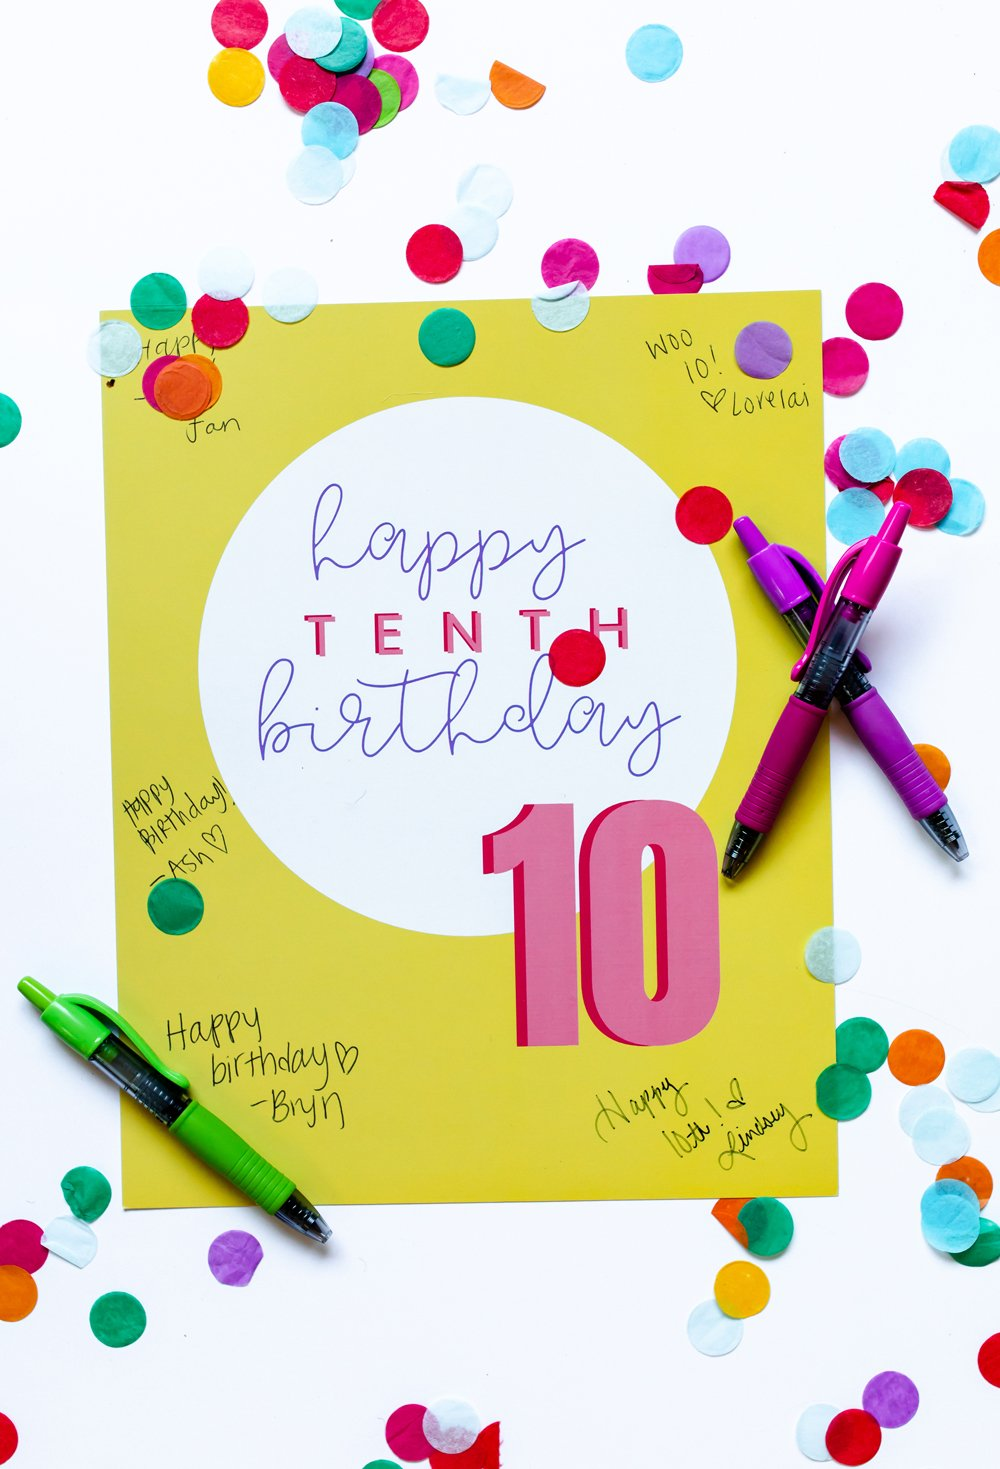 10th Birthday Guest Book Sign In posters